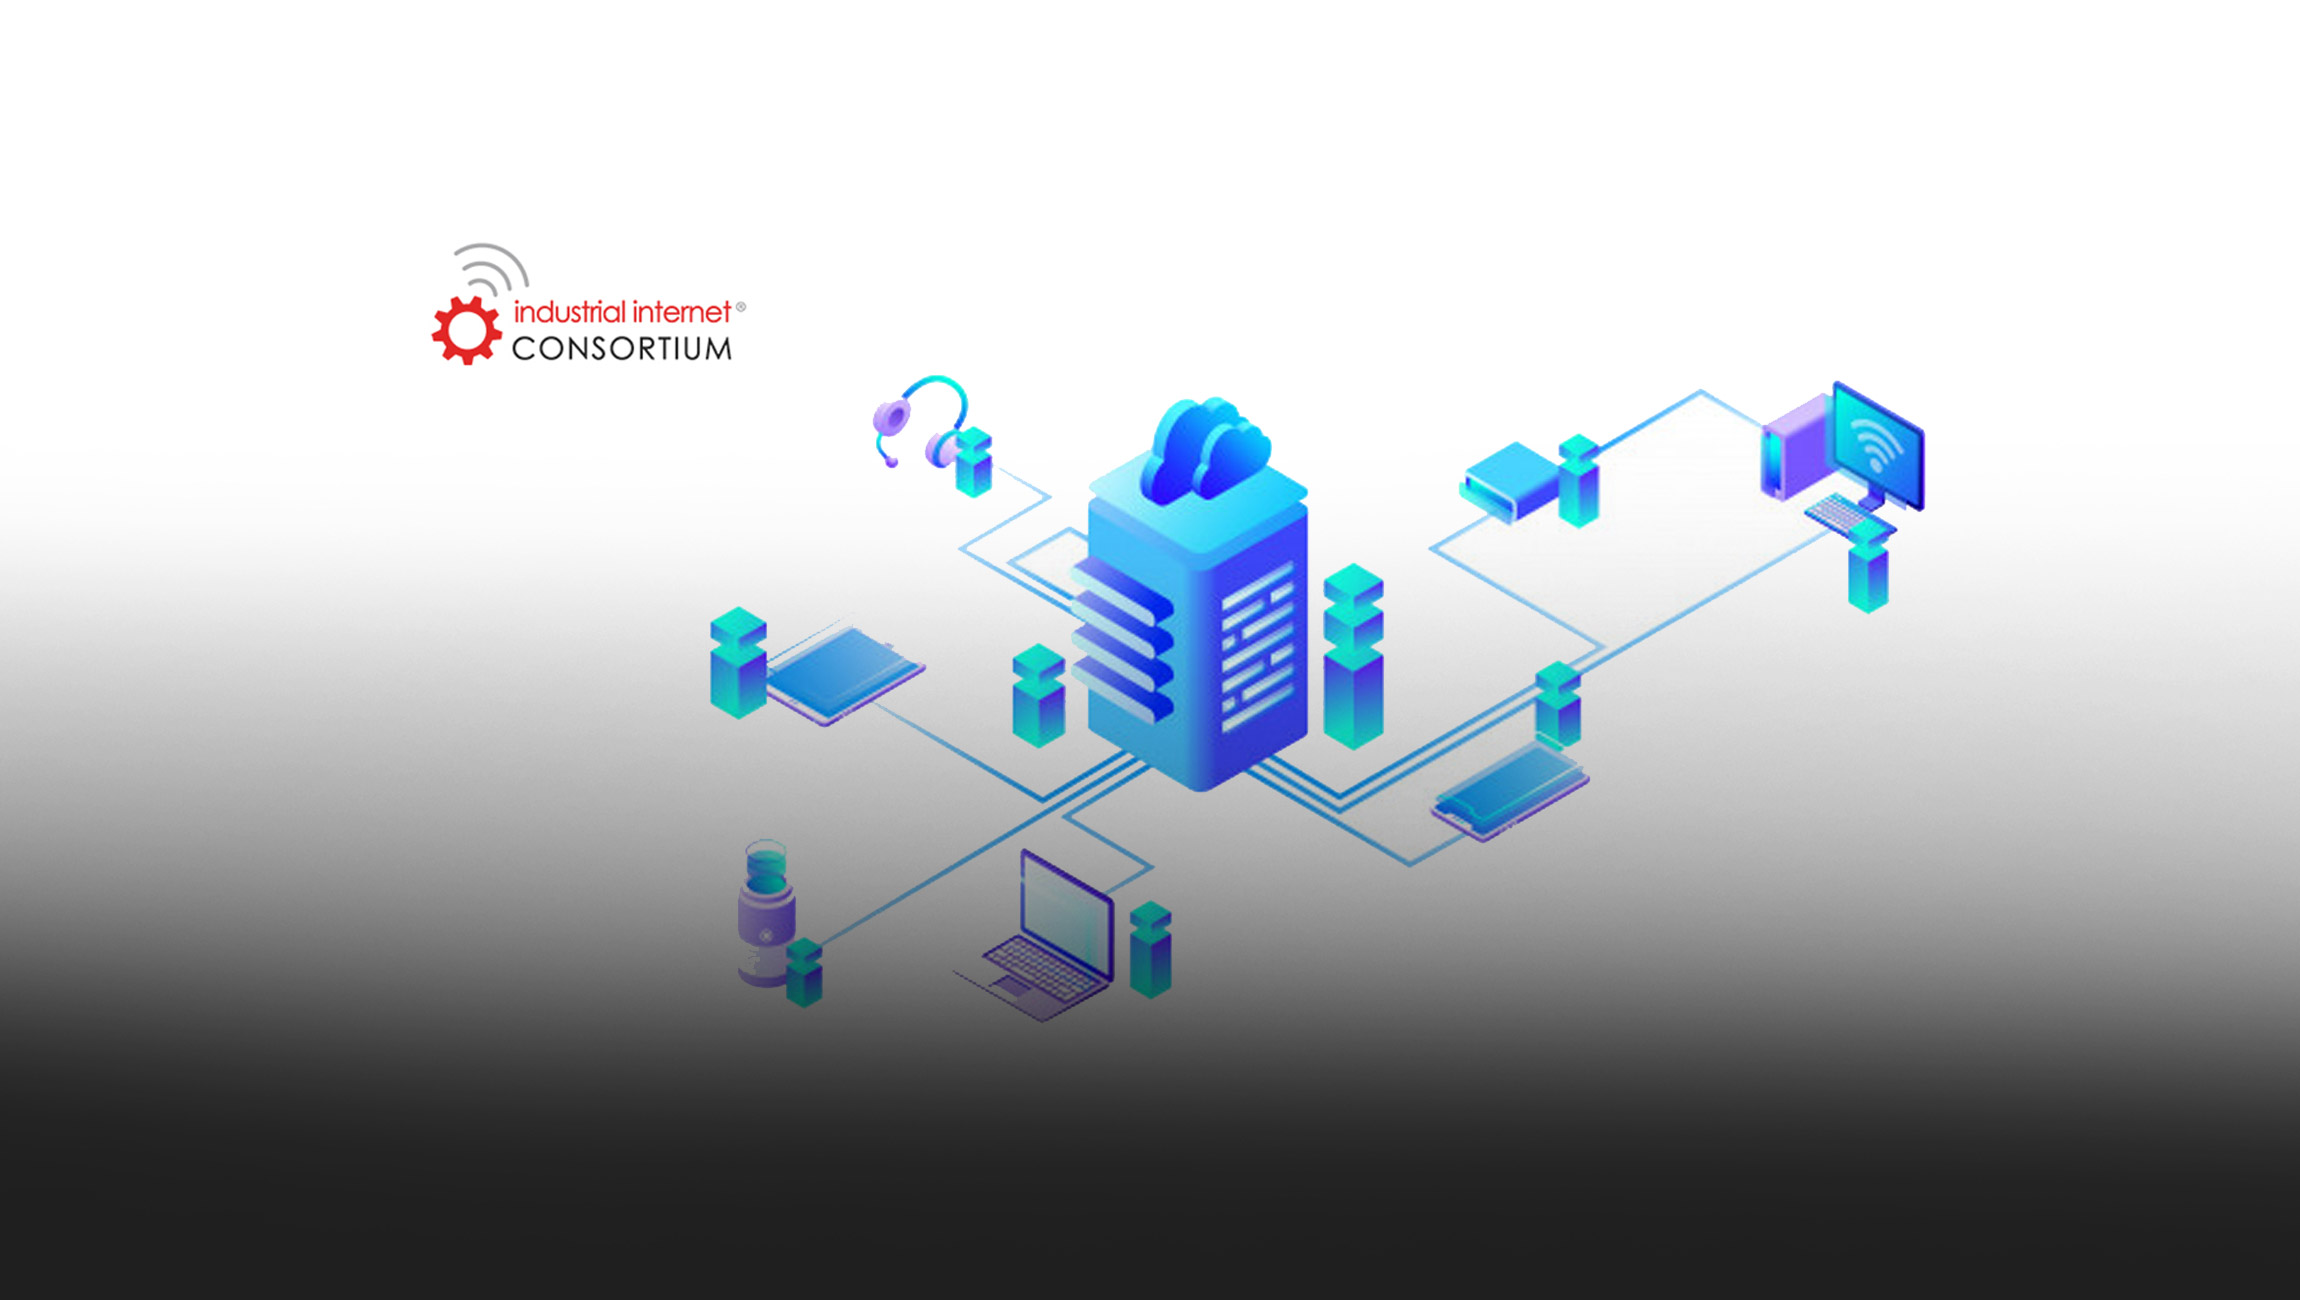 Industrial Internet Consortium White Paper Identifies Innovation Process For Digital Transformation